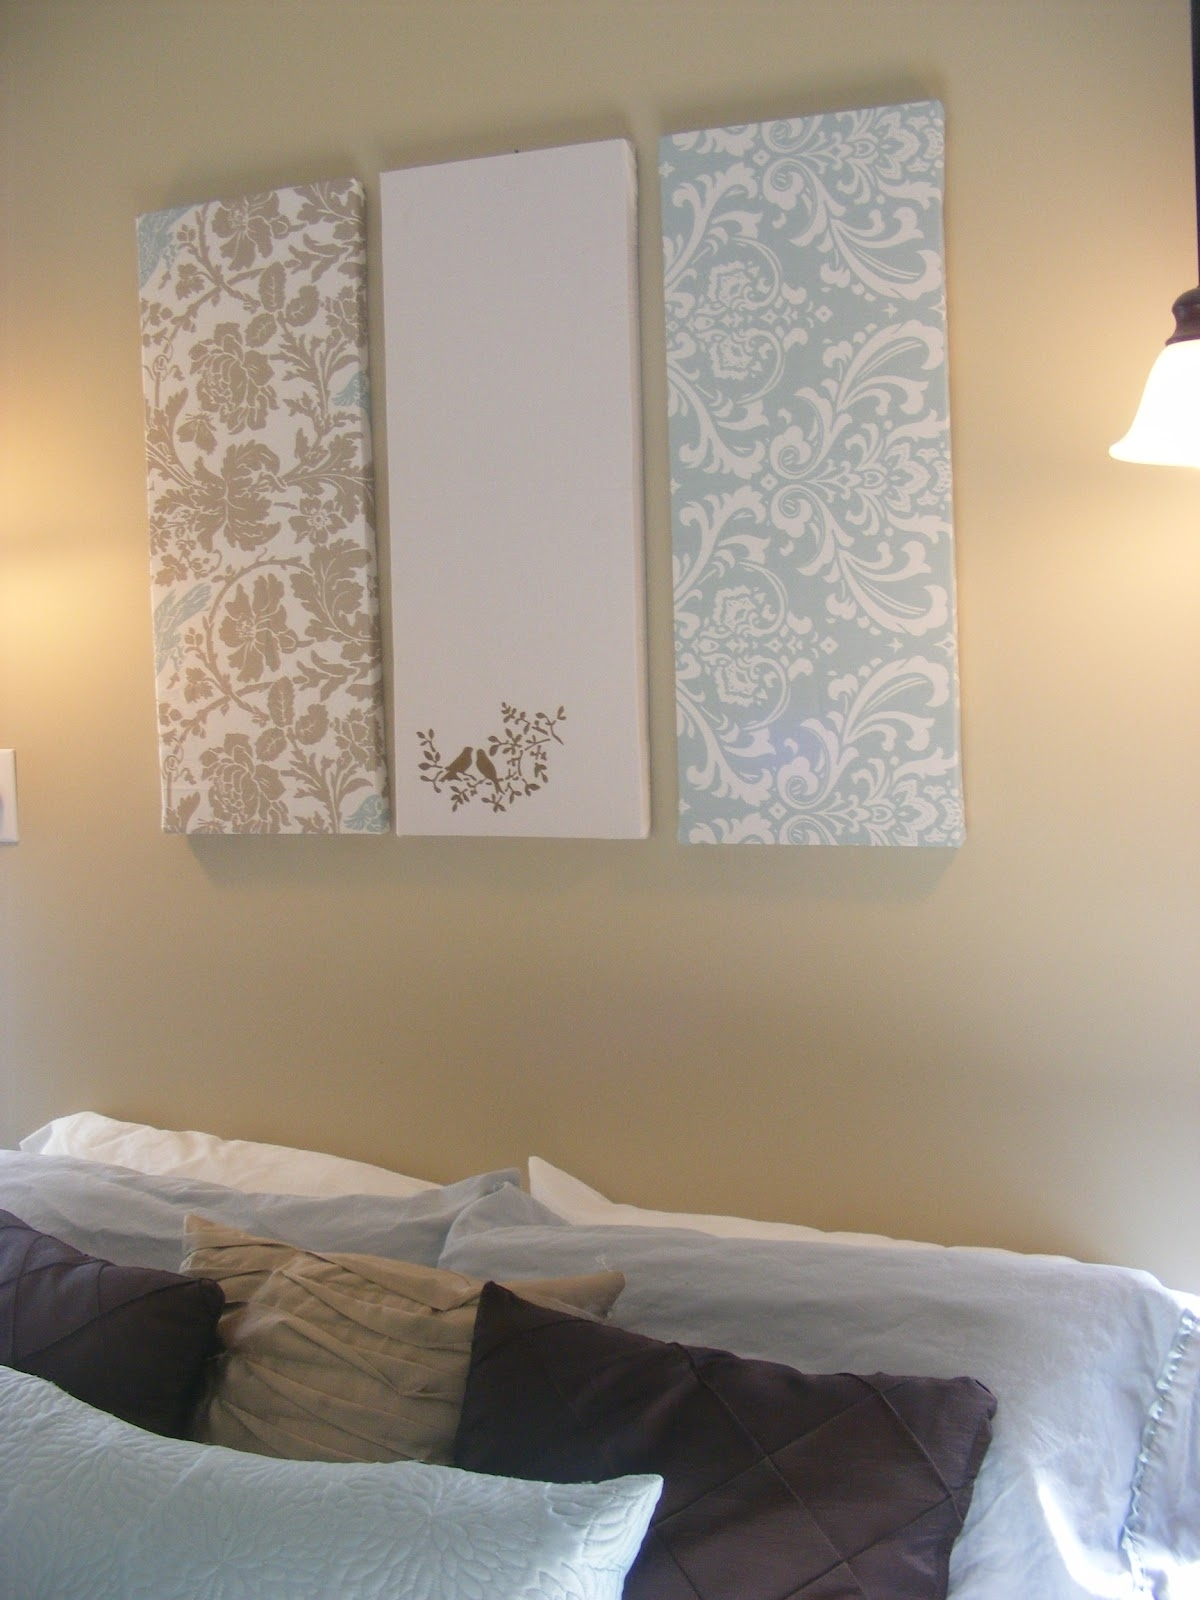 Styrofoam Wall Art With Preferred The Complete Guide To Imperfect Homemaking: Simple, Thrifty Diy Art (Gallery 14 of 15)